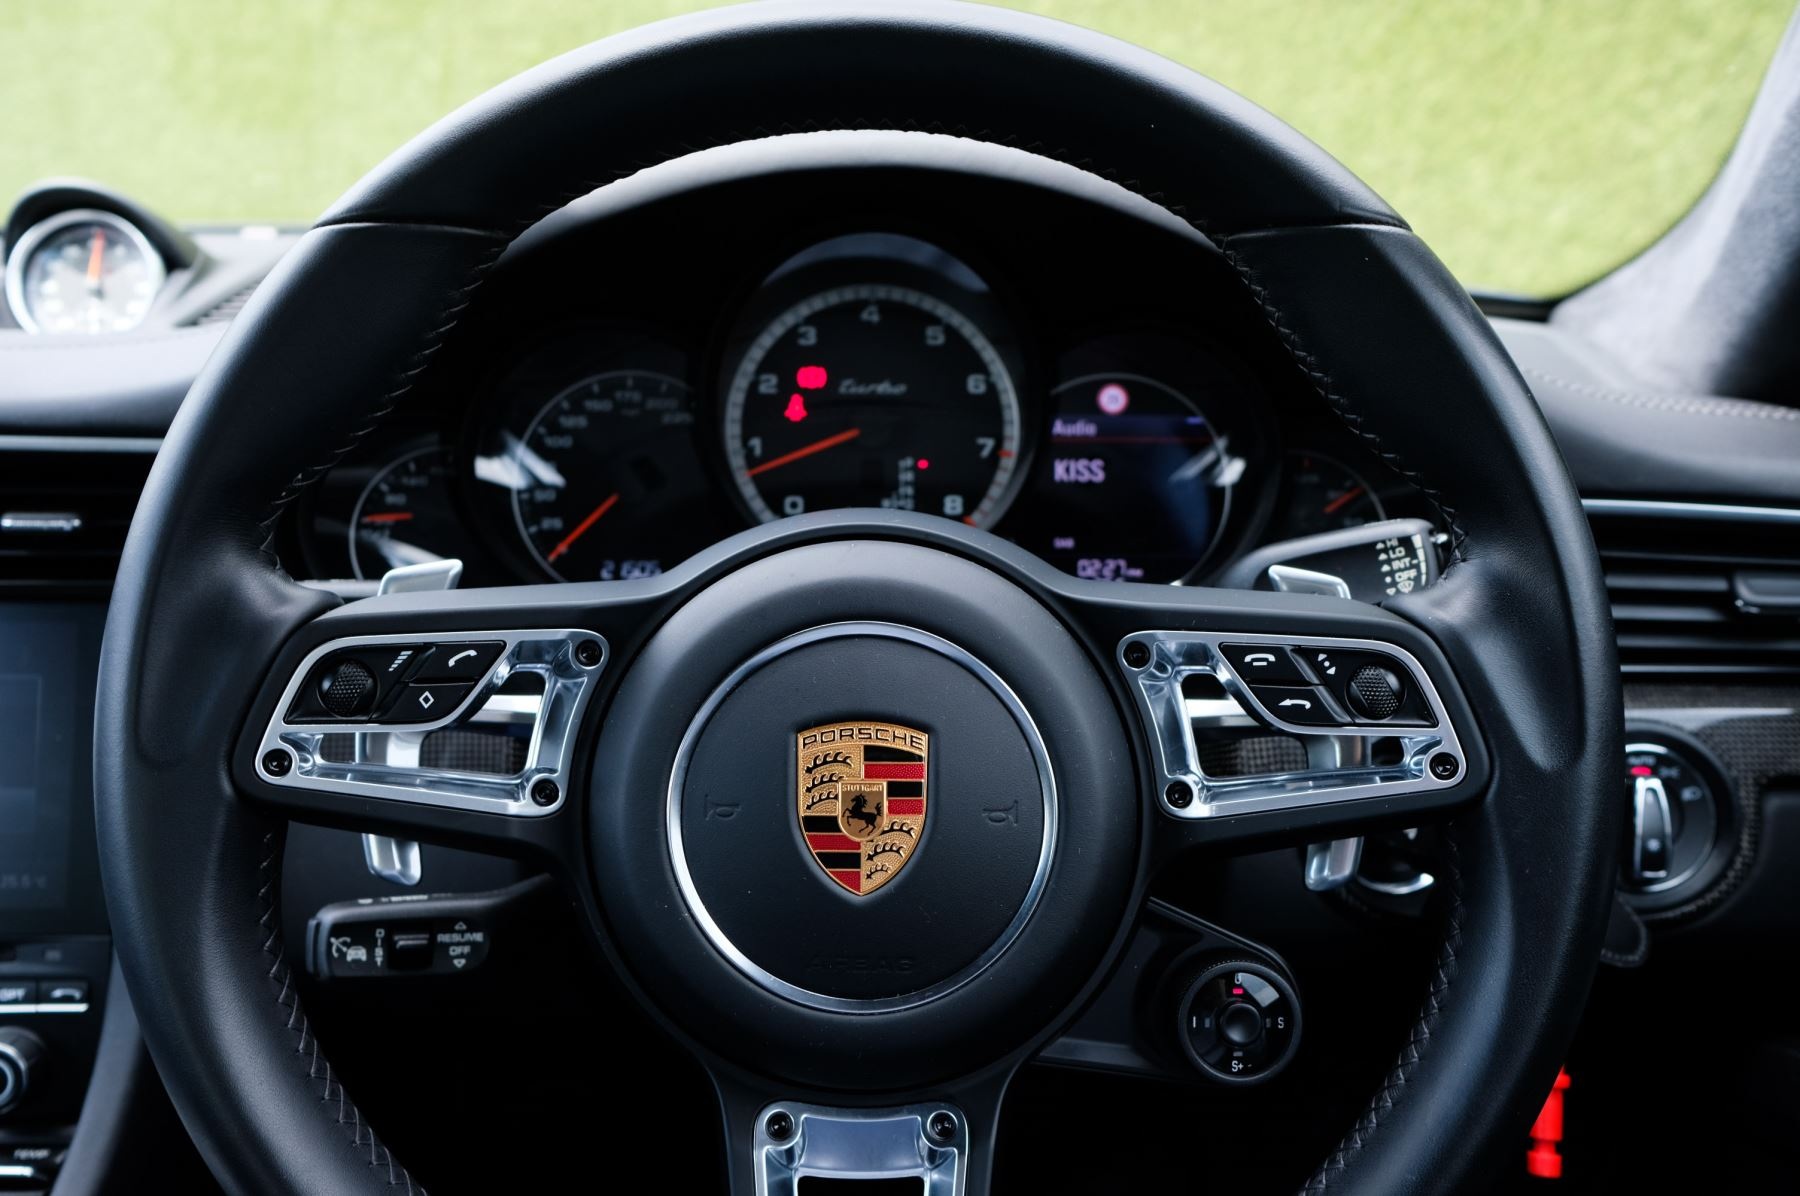 Porsche 911 PDK - Carbon interior package - Privacy Glass - 20 inch Sport Classic wheels image 21